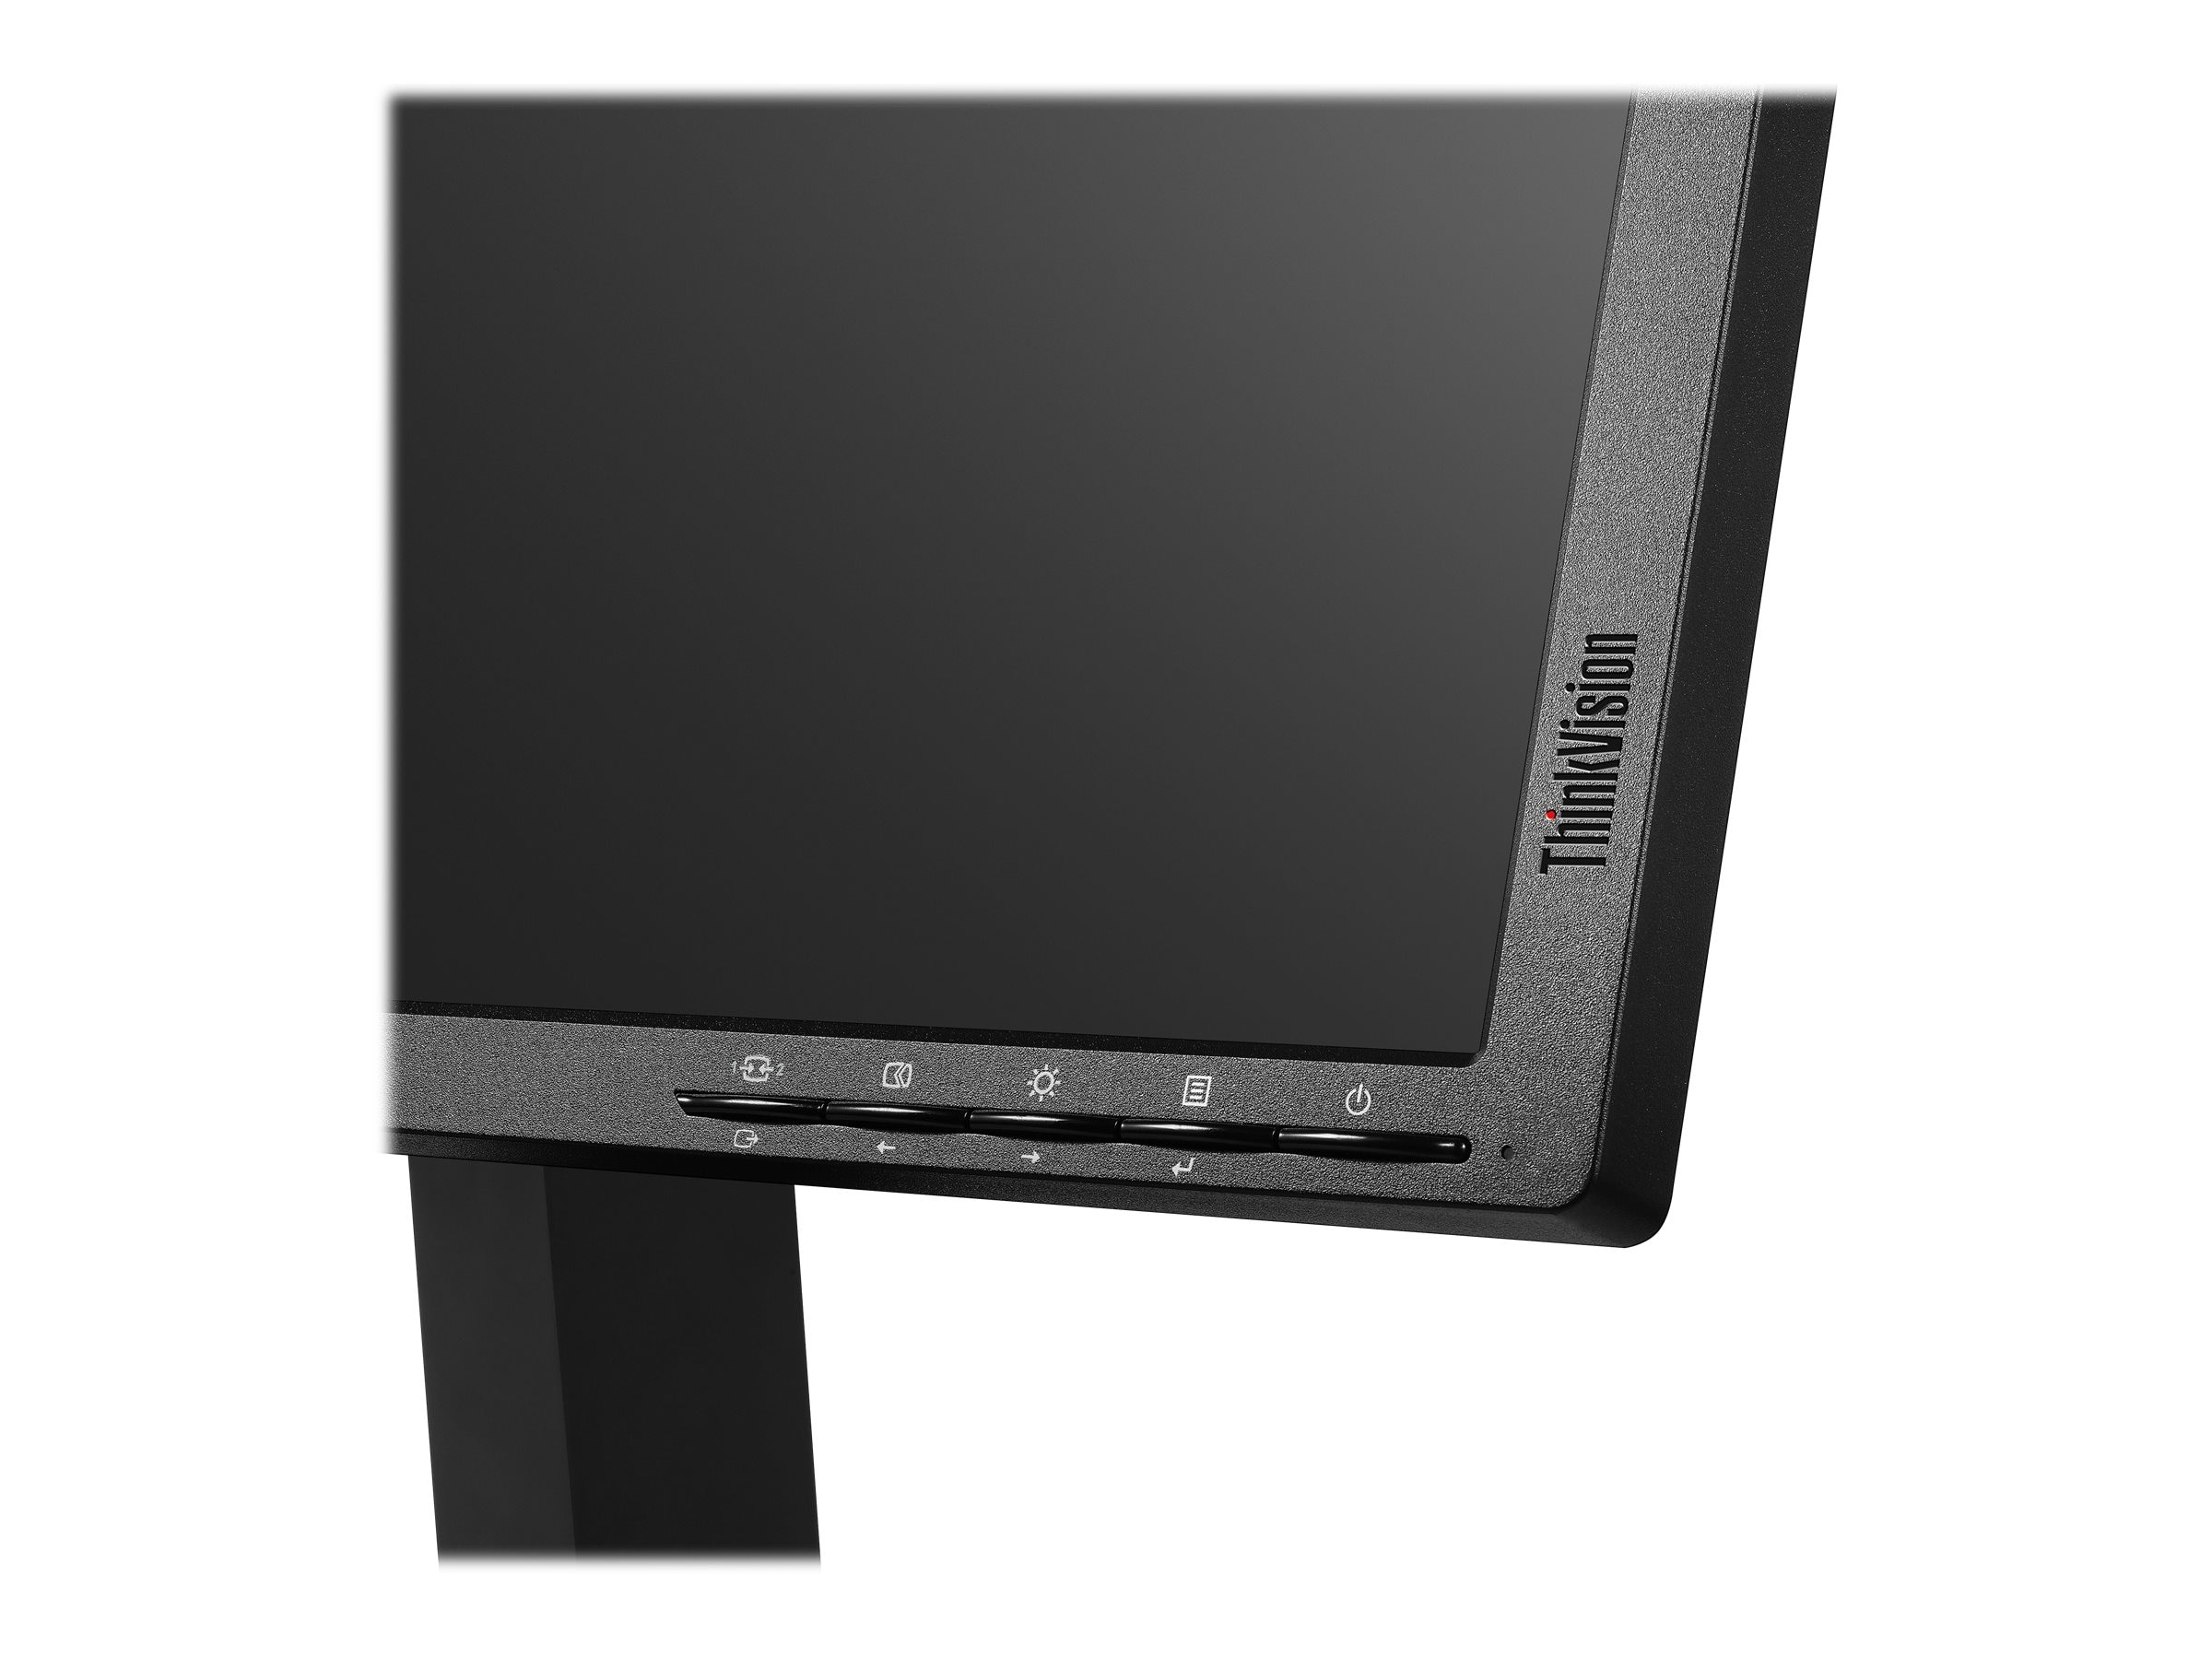 Lenovo 23 ThinkVision T2324p Full HD LED-LCD Monitor, Black, 60GBMAR1US